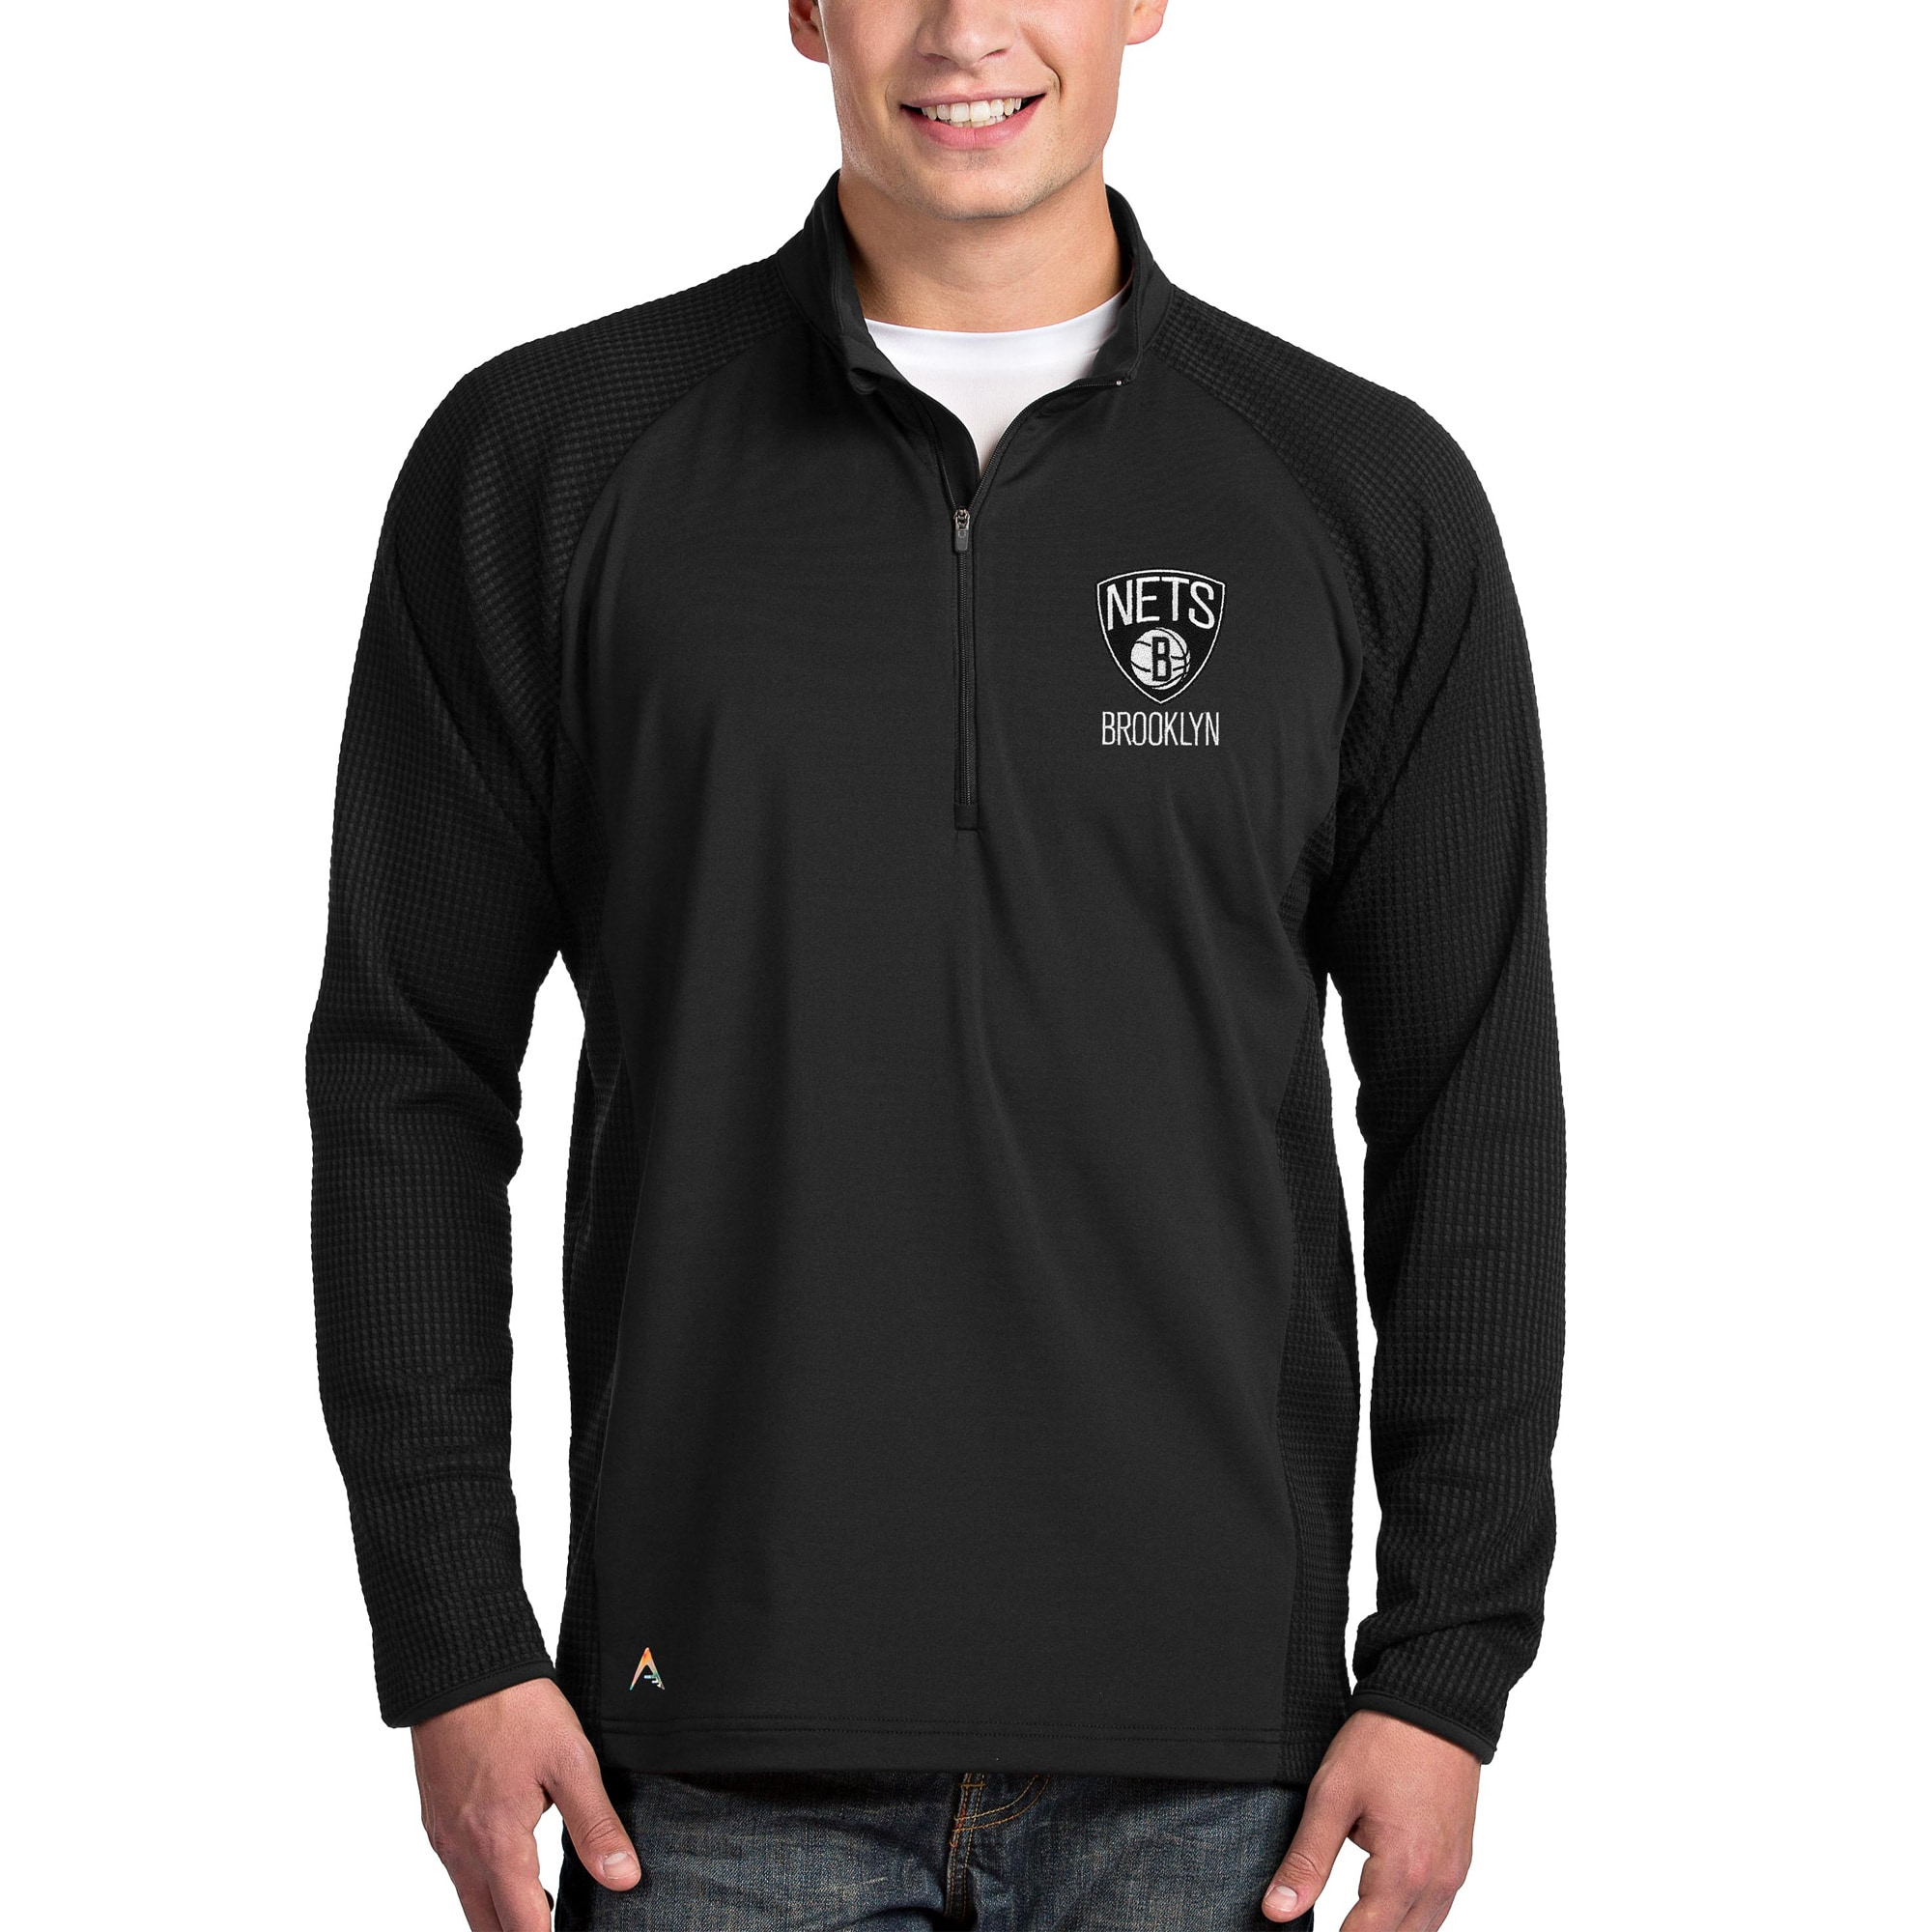 Brooklyn Nets Antigua Sonar Quarter-Zip Pullover Jacket - Black